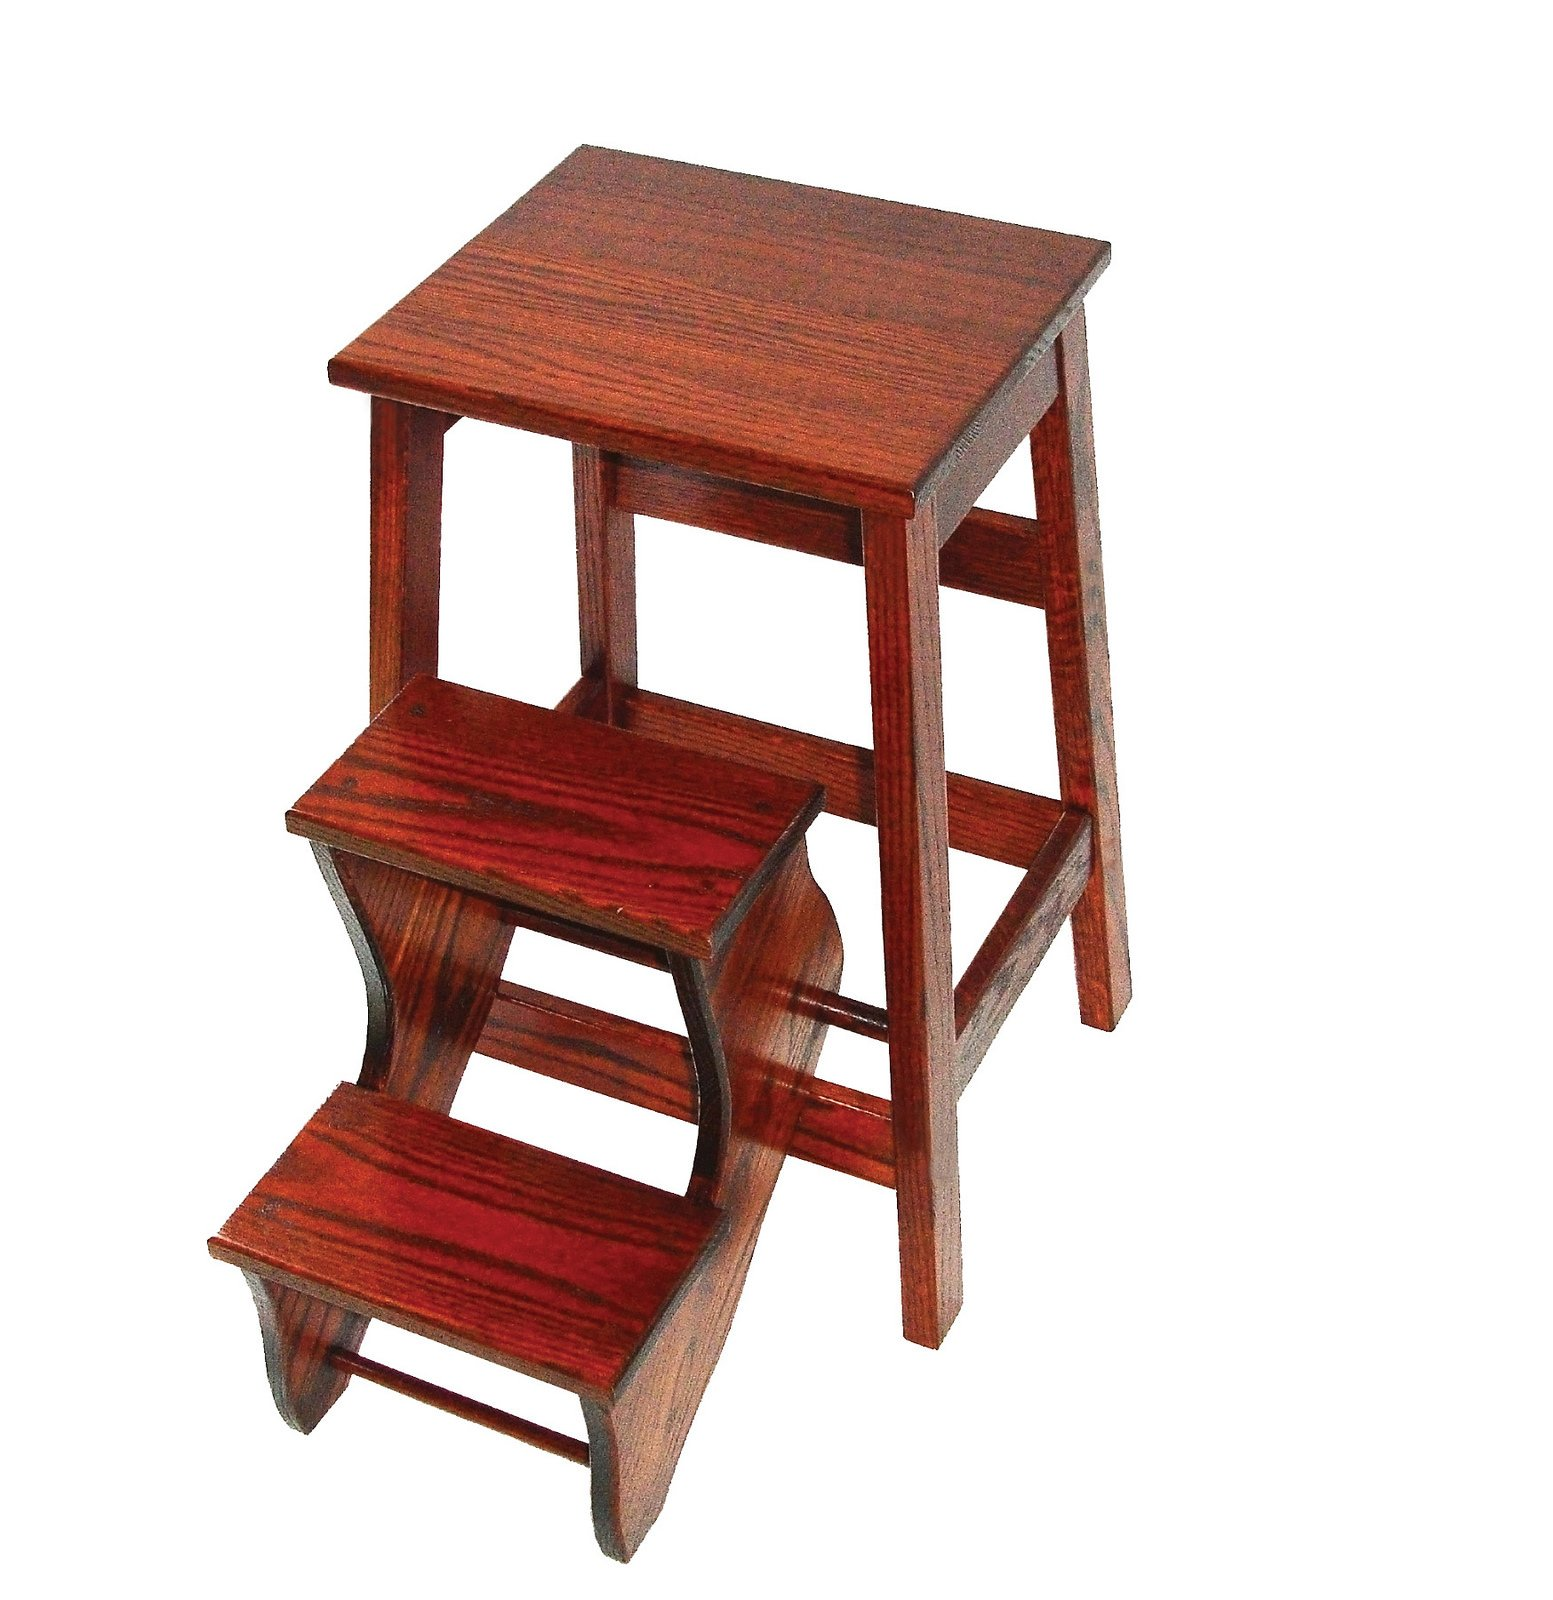 Counter Height Oak Stool with Flip Out Steps - Amish Made in USA